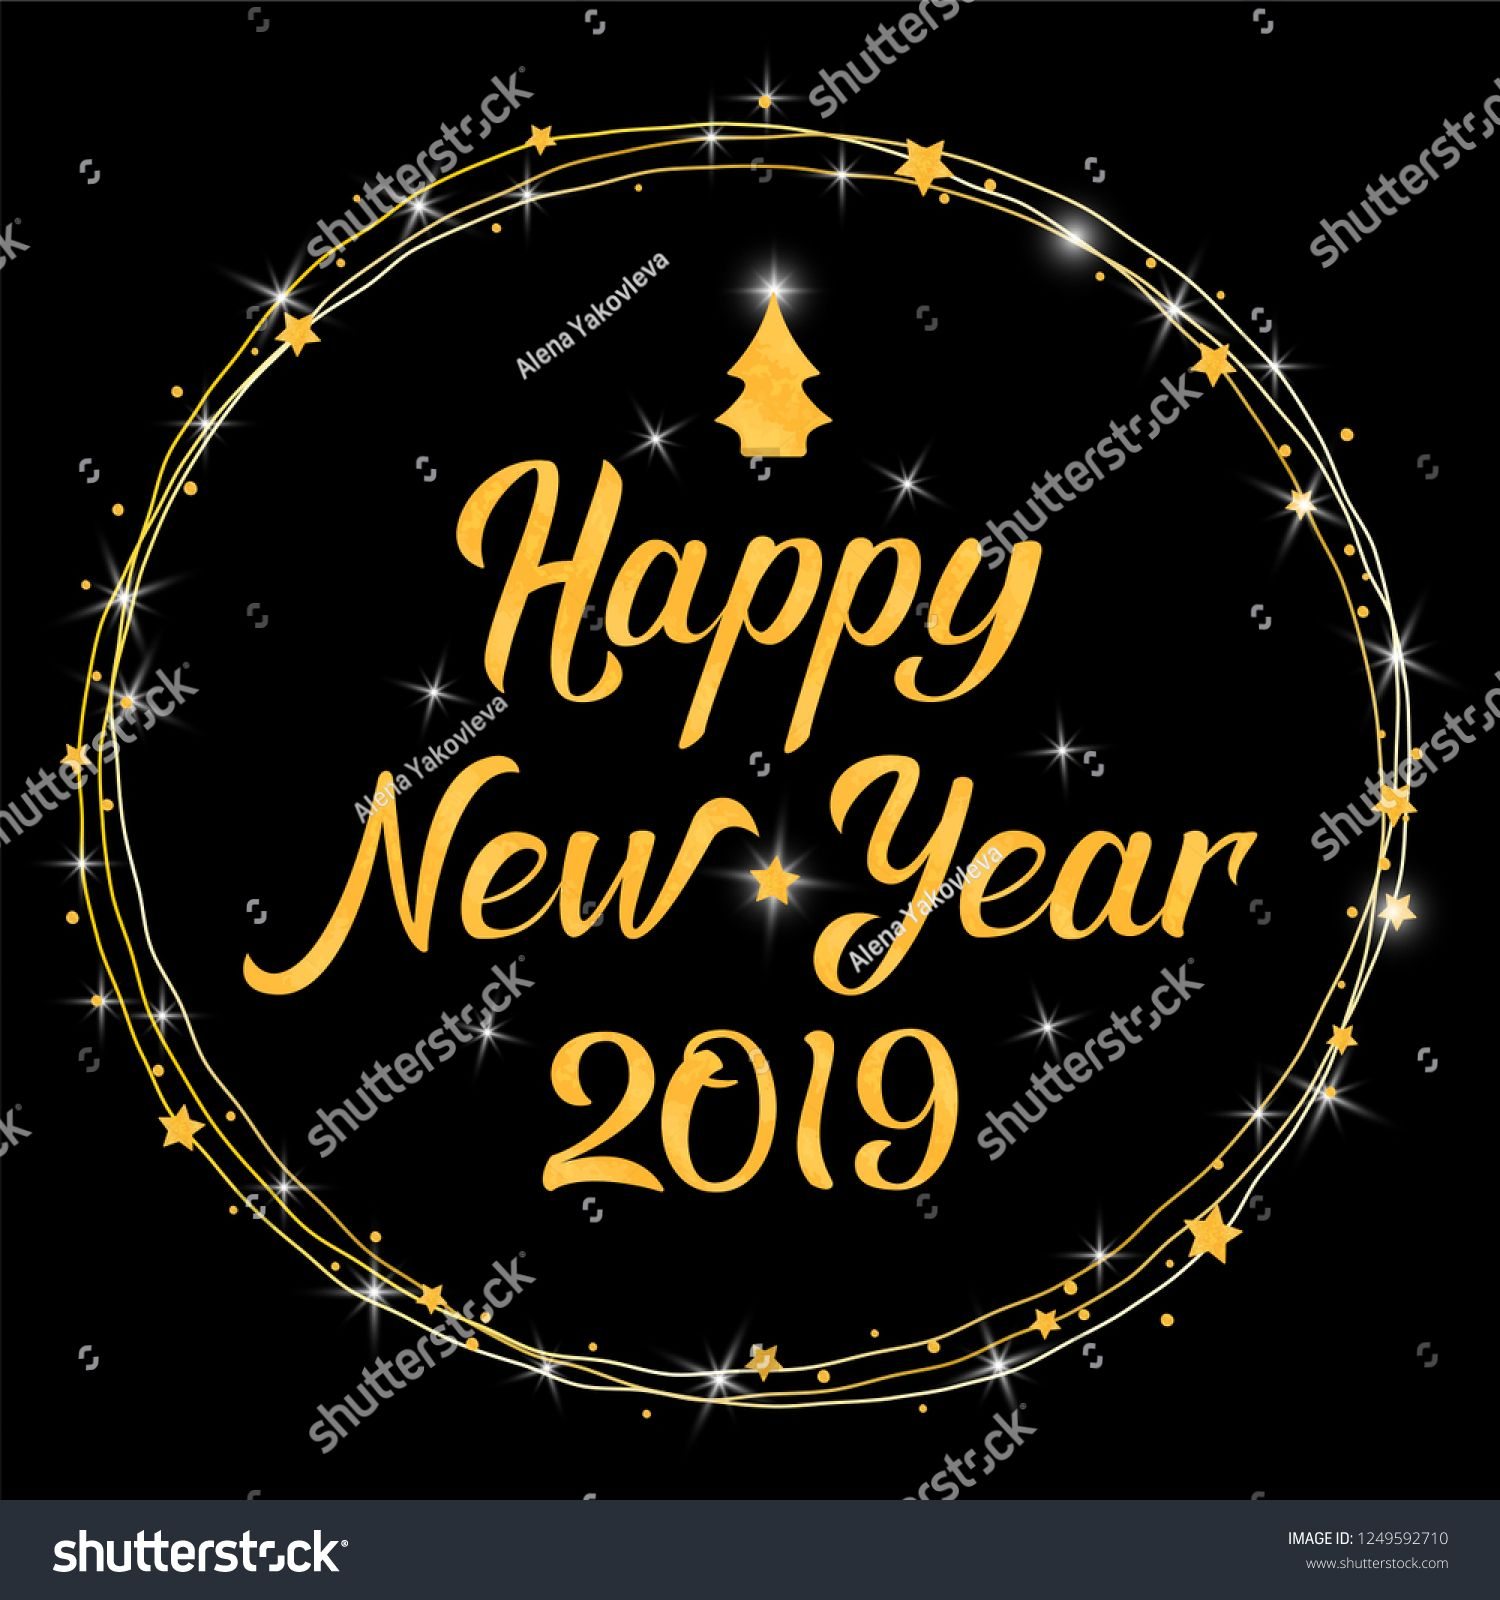 Happy New Year 2019 gold and black hand lettering template